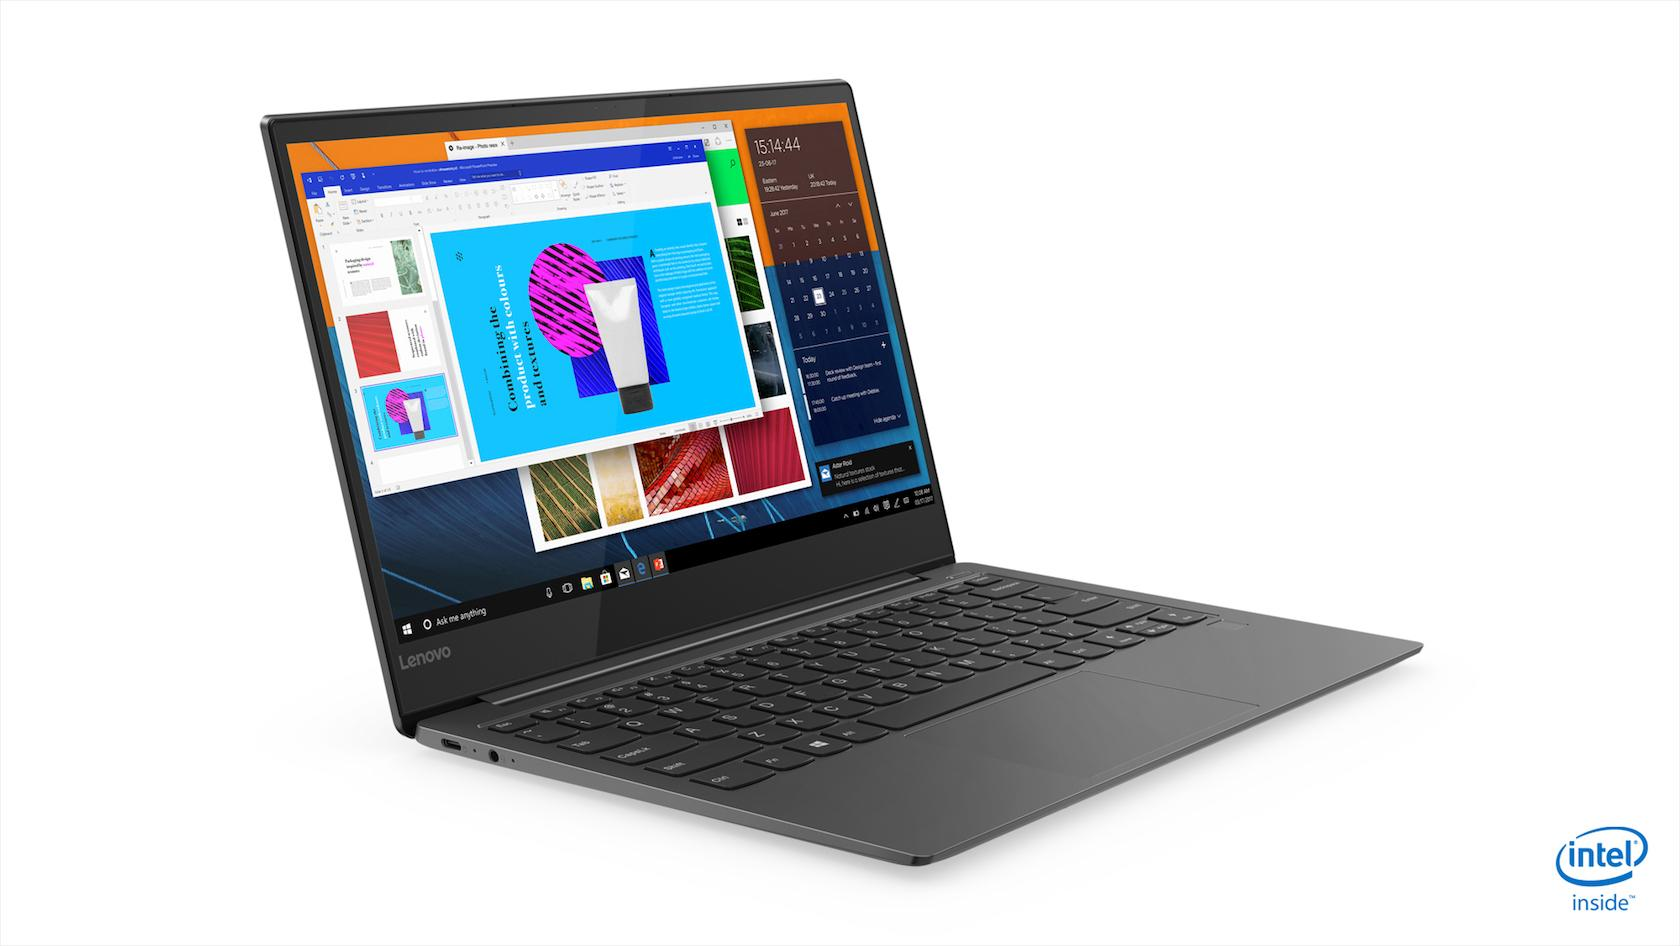 Lenovo Yoga S730 is an ultra-sleek compromise-free MacBook